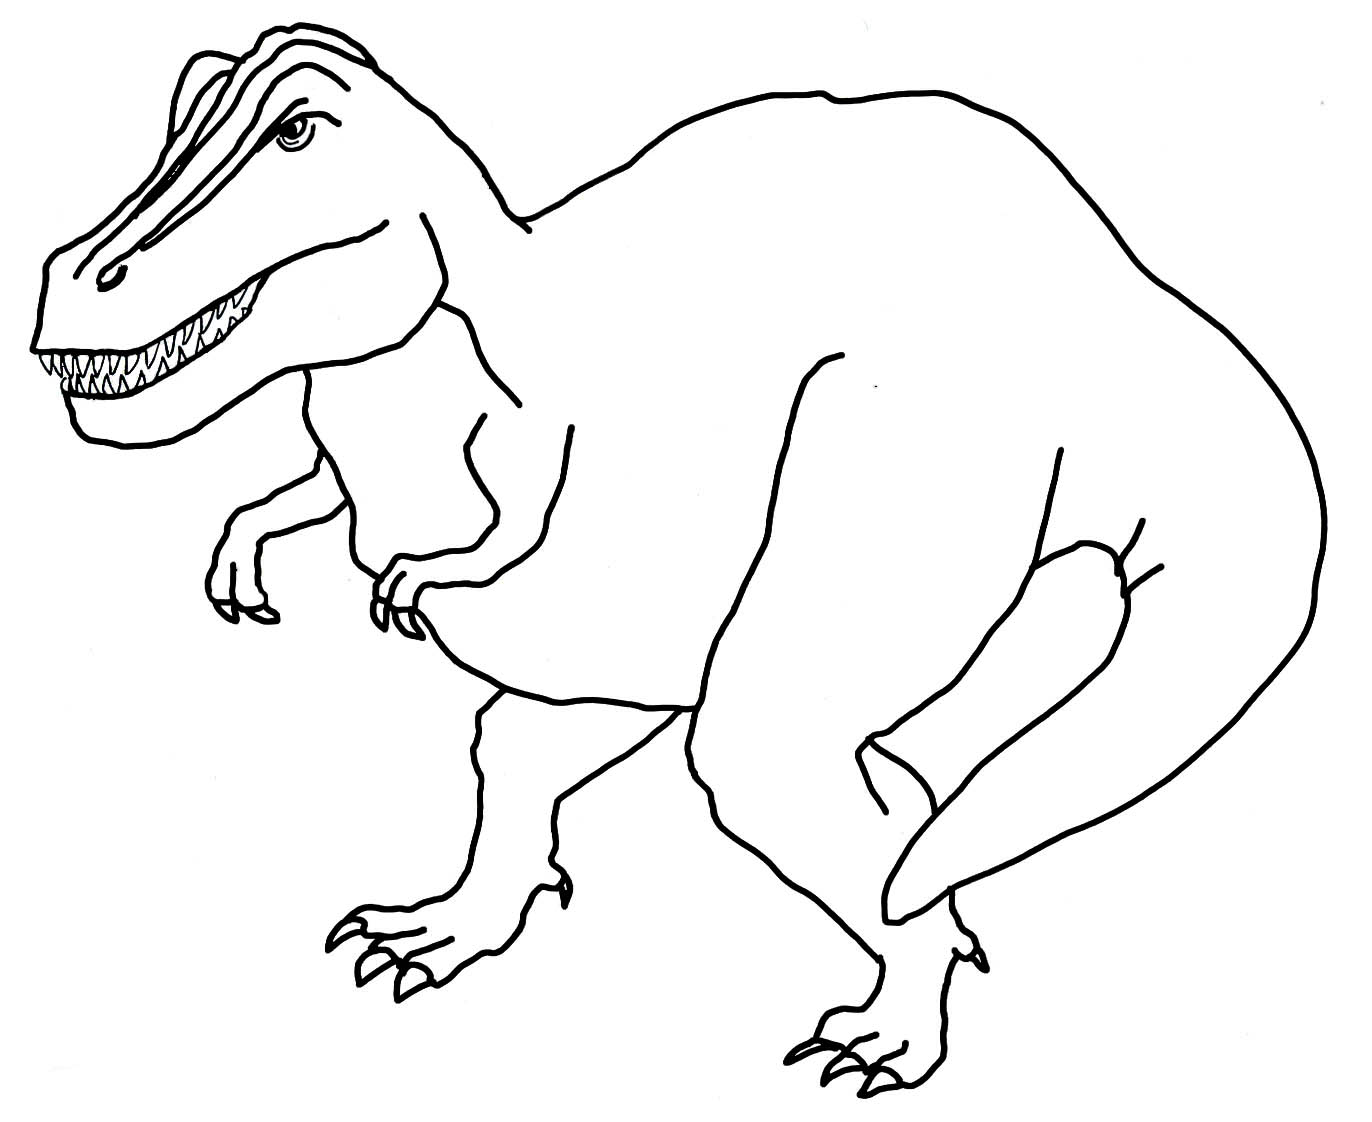 dinosaur images to colour dinosaur coloring pages skip to my lou to colour images dinosaur